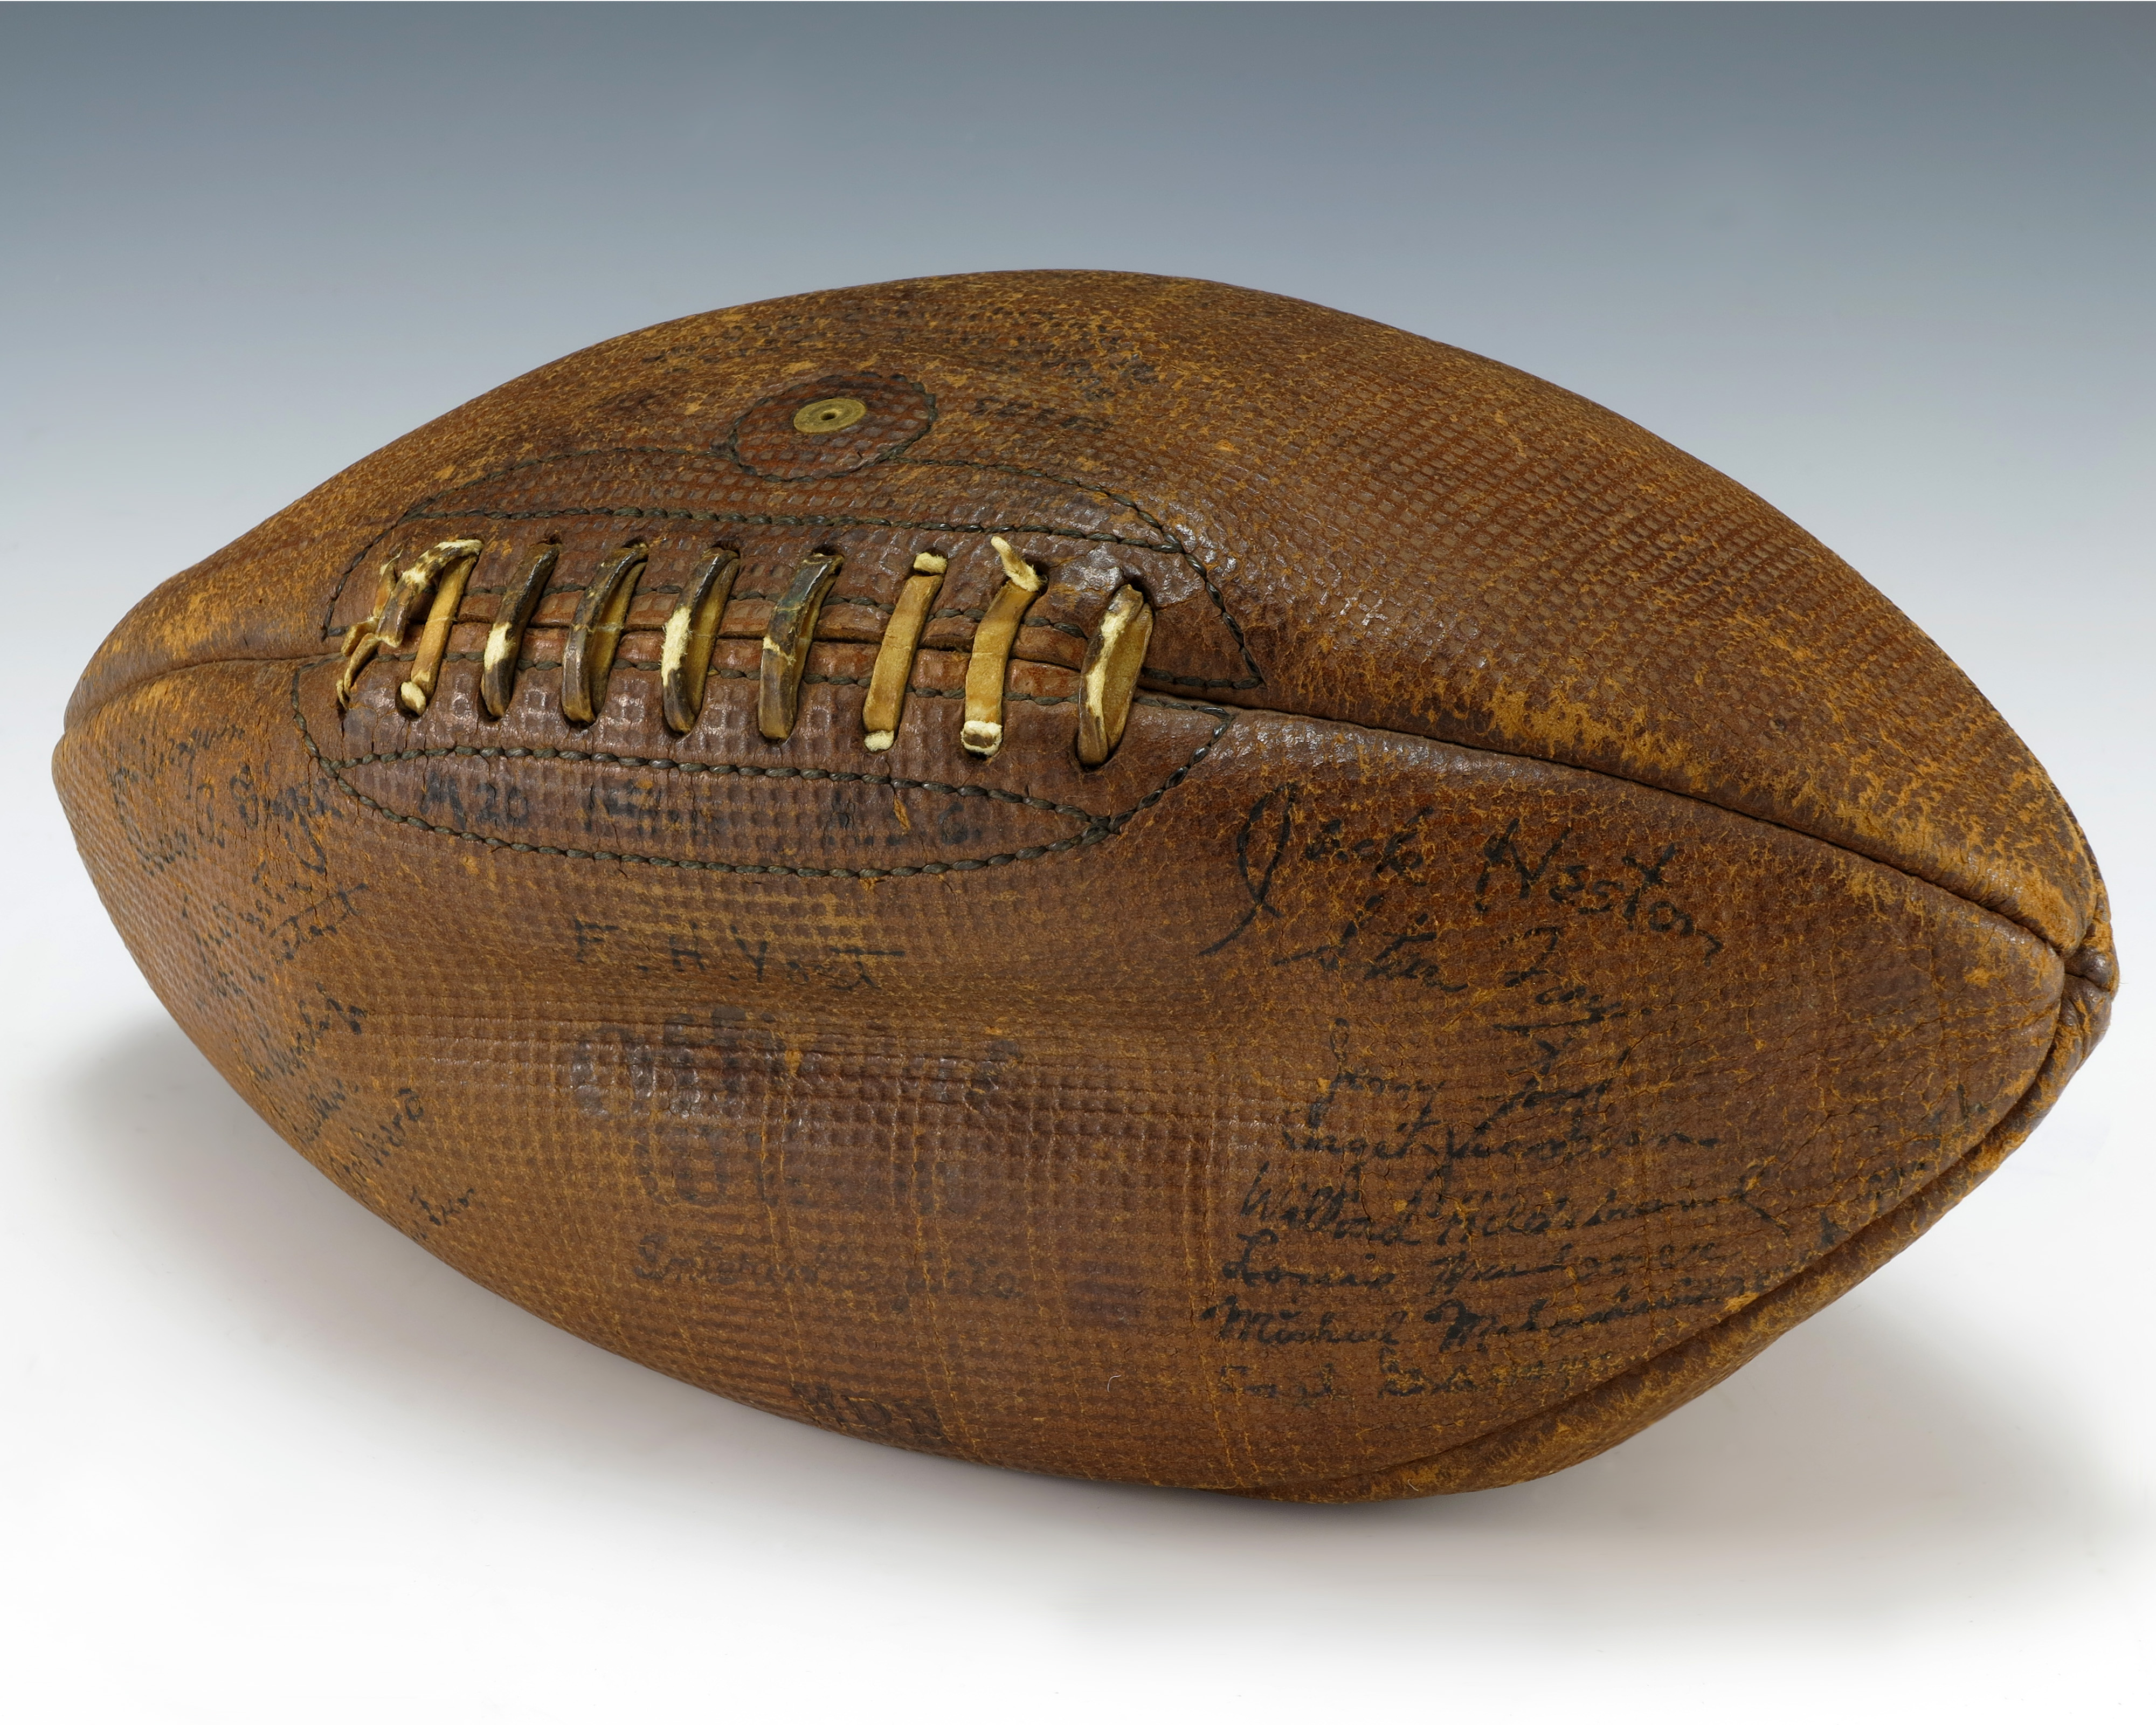 http://en.wikipedia.org/wiki/File:Football_signed_by_Gerald_R._Ford.jpg